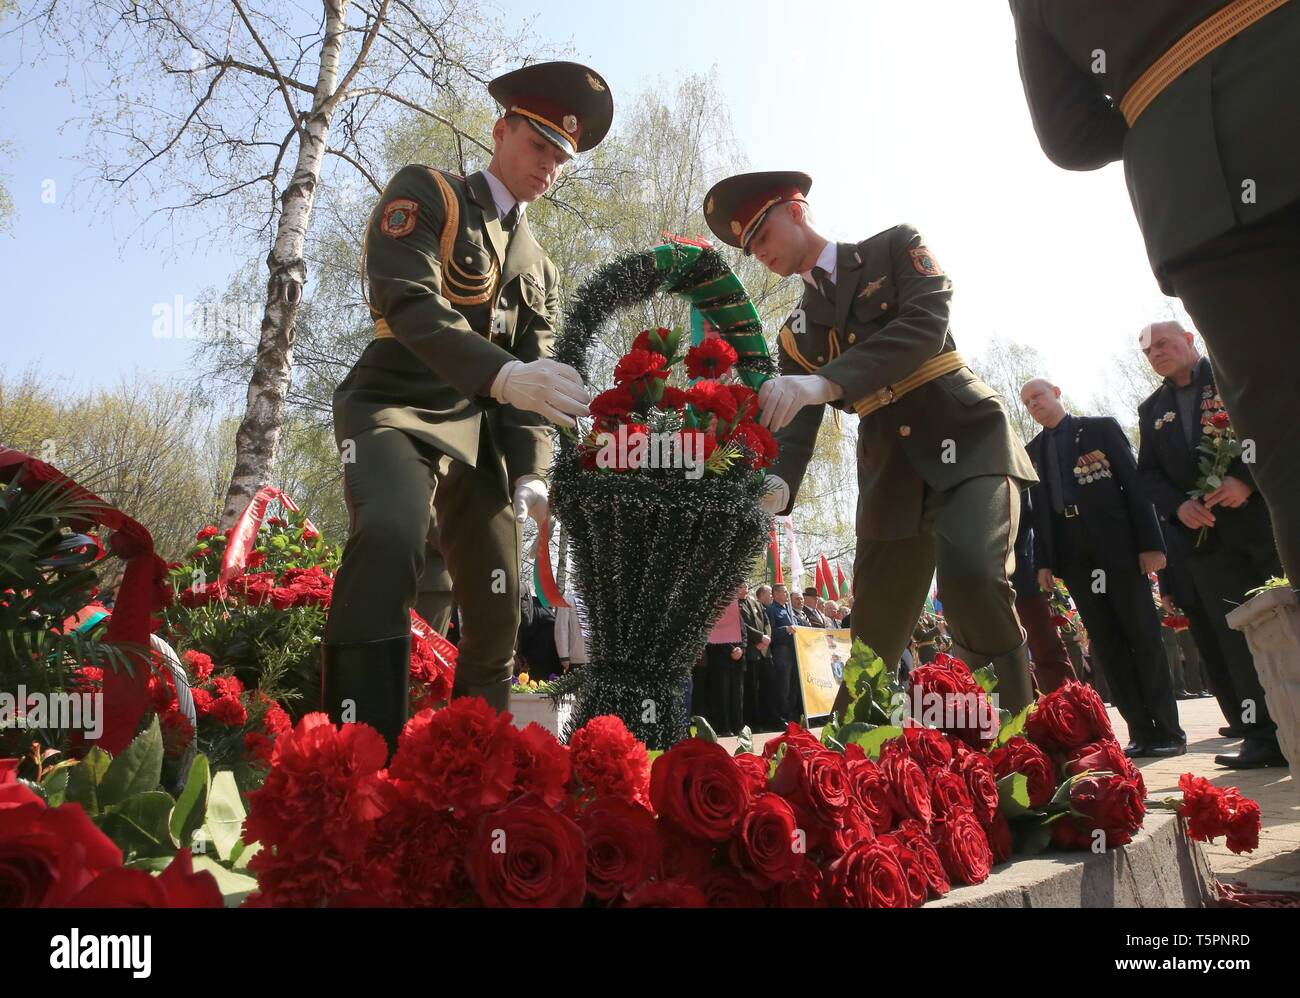 Minsk, Belarus. 26th Apr, 2019. Soldiers lay flowers to commemorate the victims of the Chernobyl disaster in Minsk, Belarus, April 26, 2019. The Chernobyl nuclear power plant, some 110 km north of the Ukrainian capital Kiev, witnessed one of the worst nuclear accidents in human history on April 26, 1986, when a series of explosions ripped through the No.4 reactor, spreading radiation across Ukraine, Belarus, Russia and other European countries. Credit: Efim Mazurevich/Xinhua/Alamy Live News - Stock Image